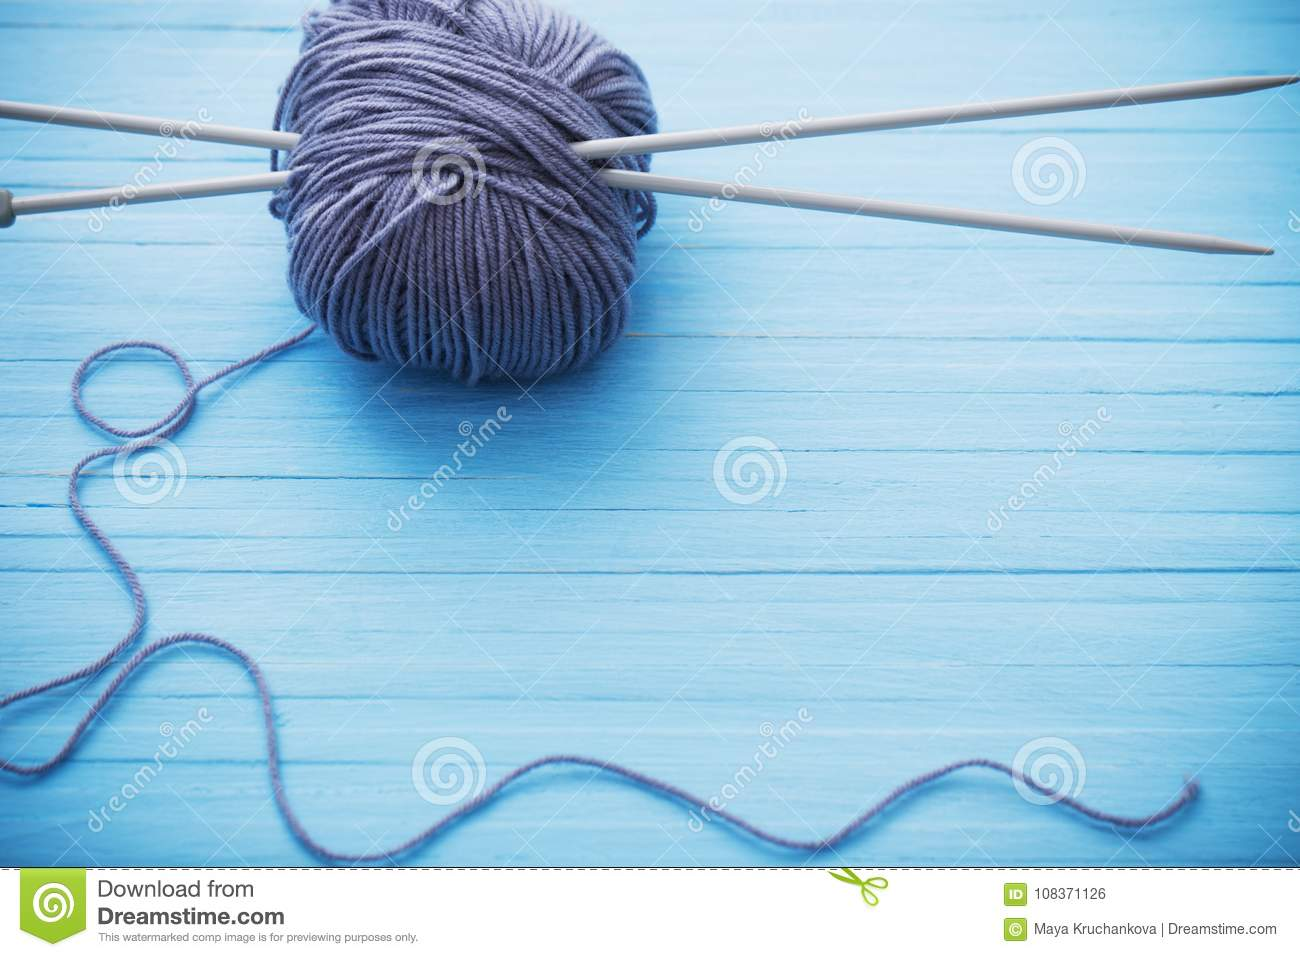 Knitting And Knitting Needles On Wooden Surface Stock Photo Image